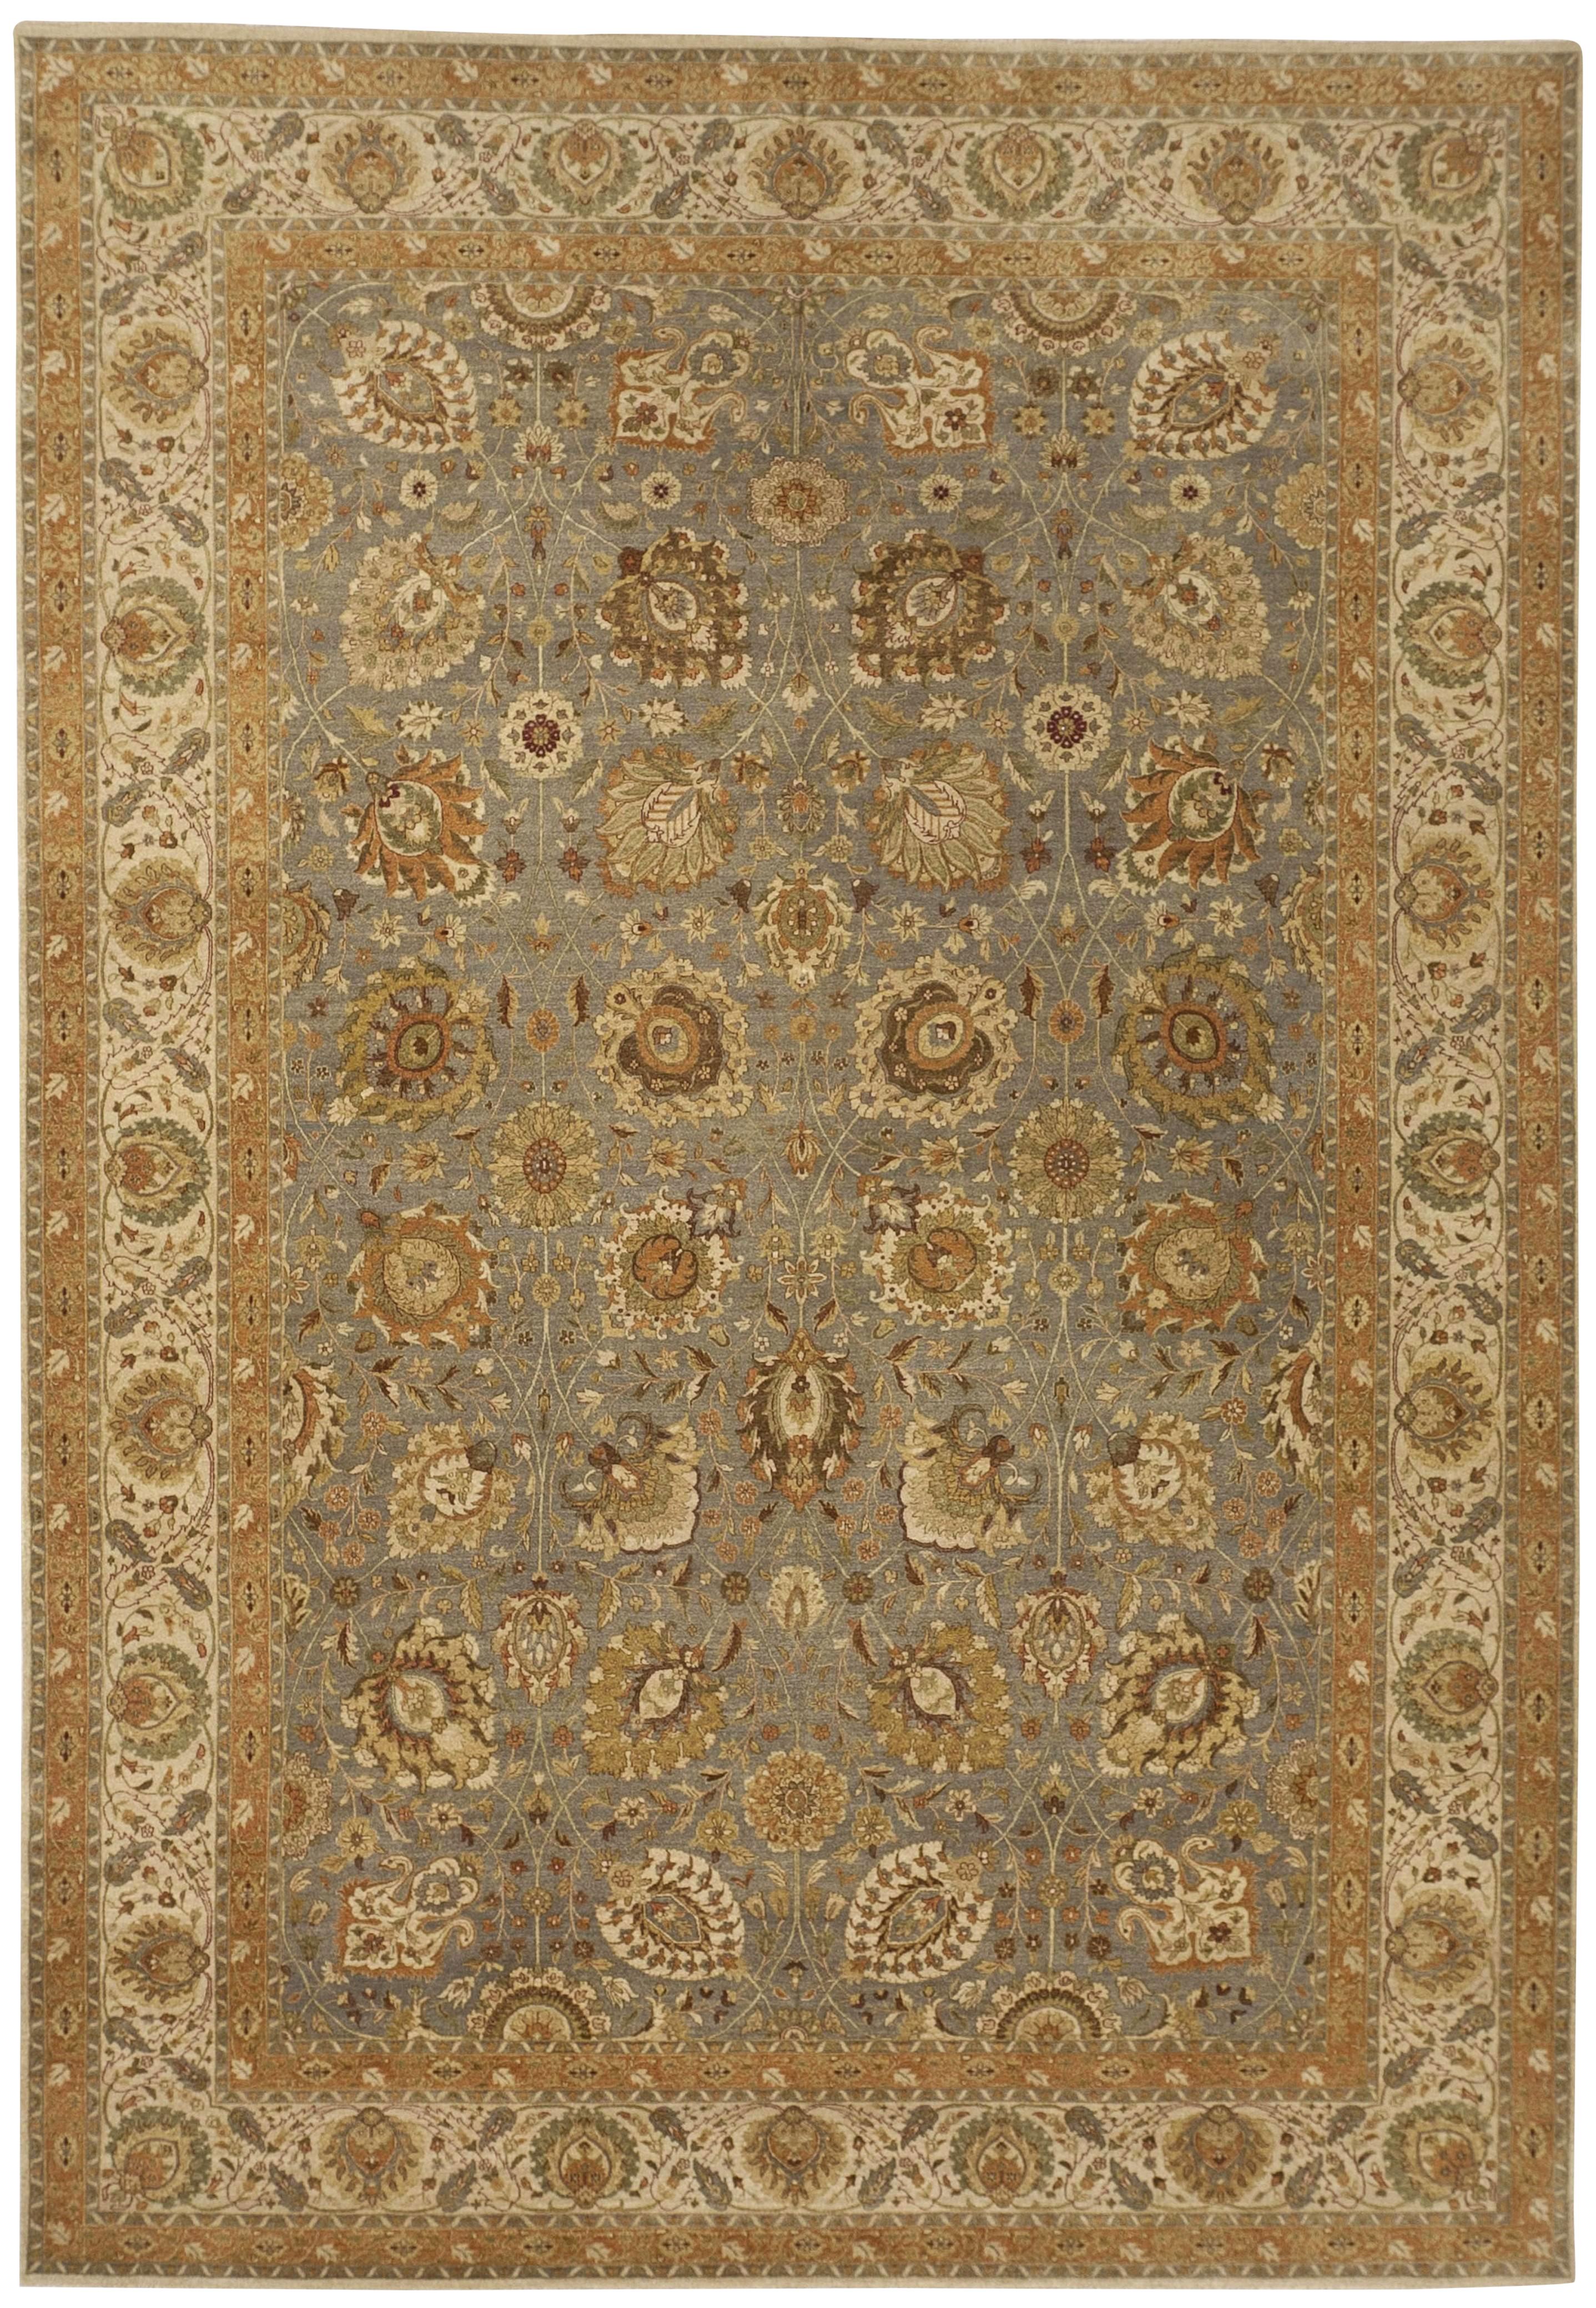 Hand Knotted Indian Rug 10 X 14 5 In 2018 Rugs Pinterest